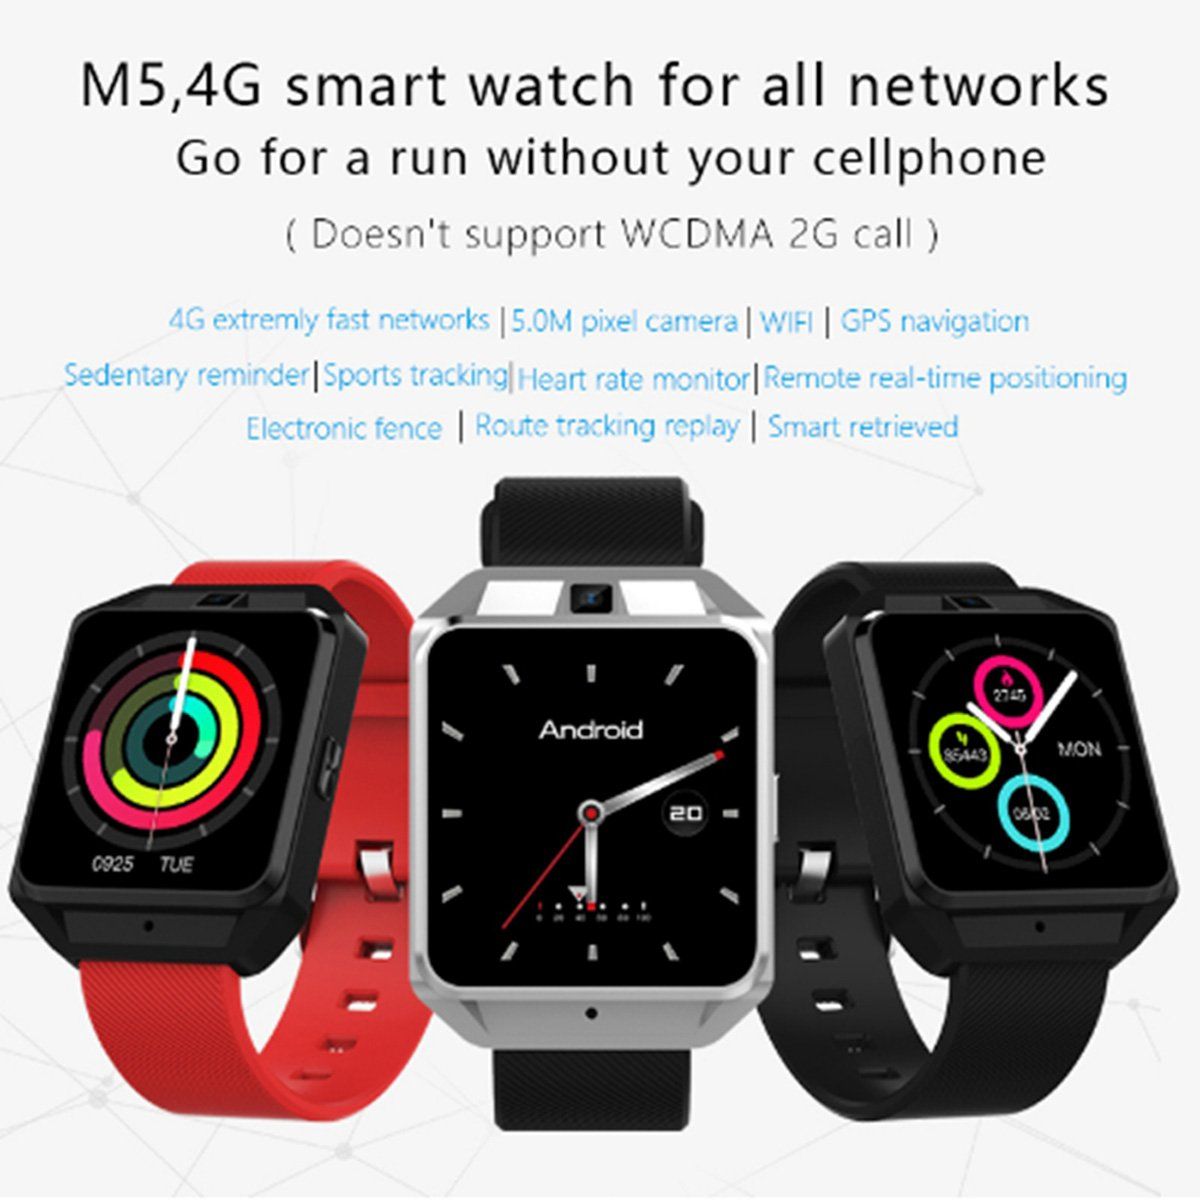 Amazon.com: OLSUS Smart Watch, Support 4G Network, Wi-Fi,5.0MP Camera, Heart Rate Monitor - Red: Electronics